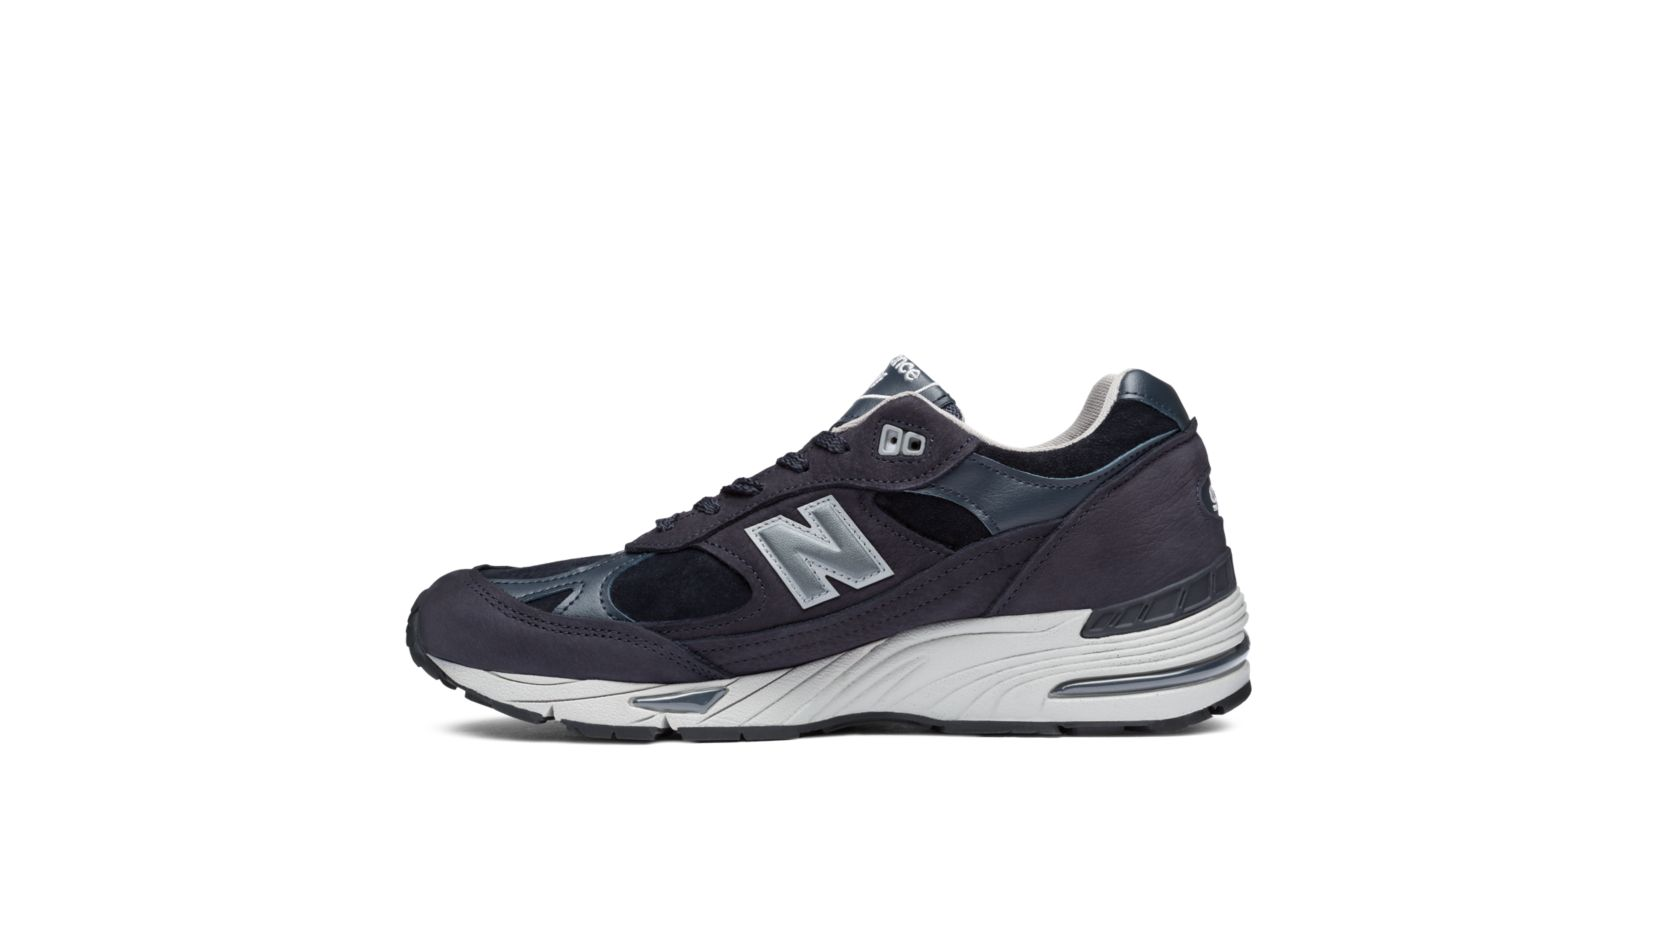 93529bb3 ... coupon for nb 991 new balance 86af0 92413 ...